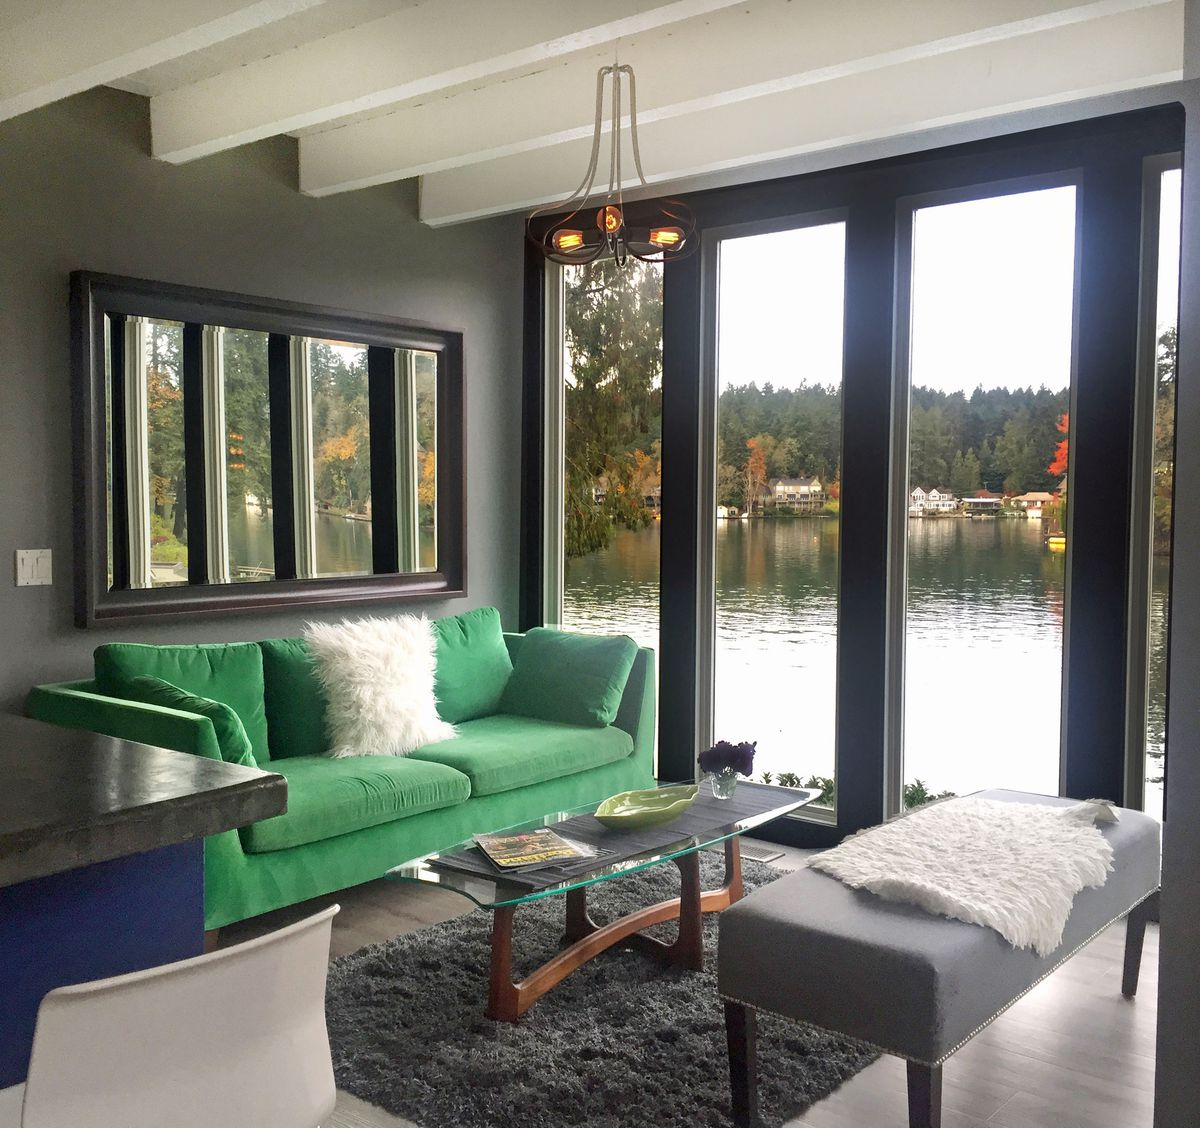 Colorful Rooms With A View: Best Paint Colors For Any Room In Your House